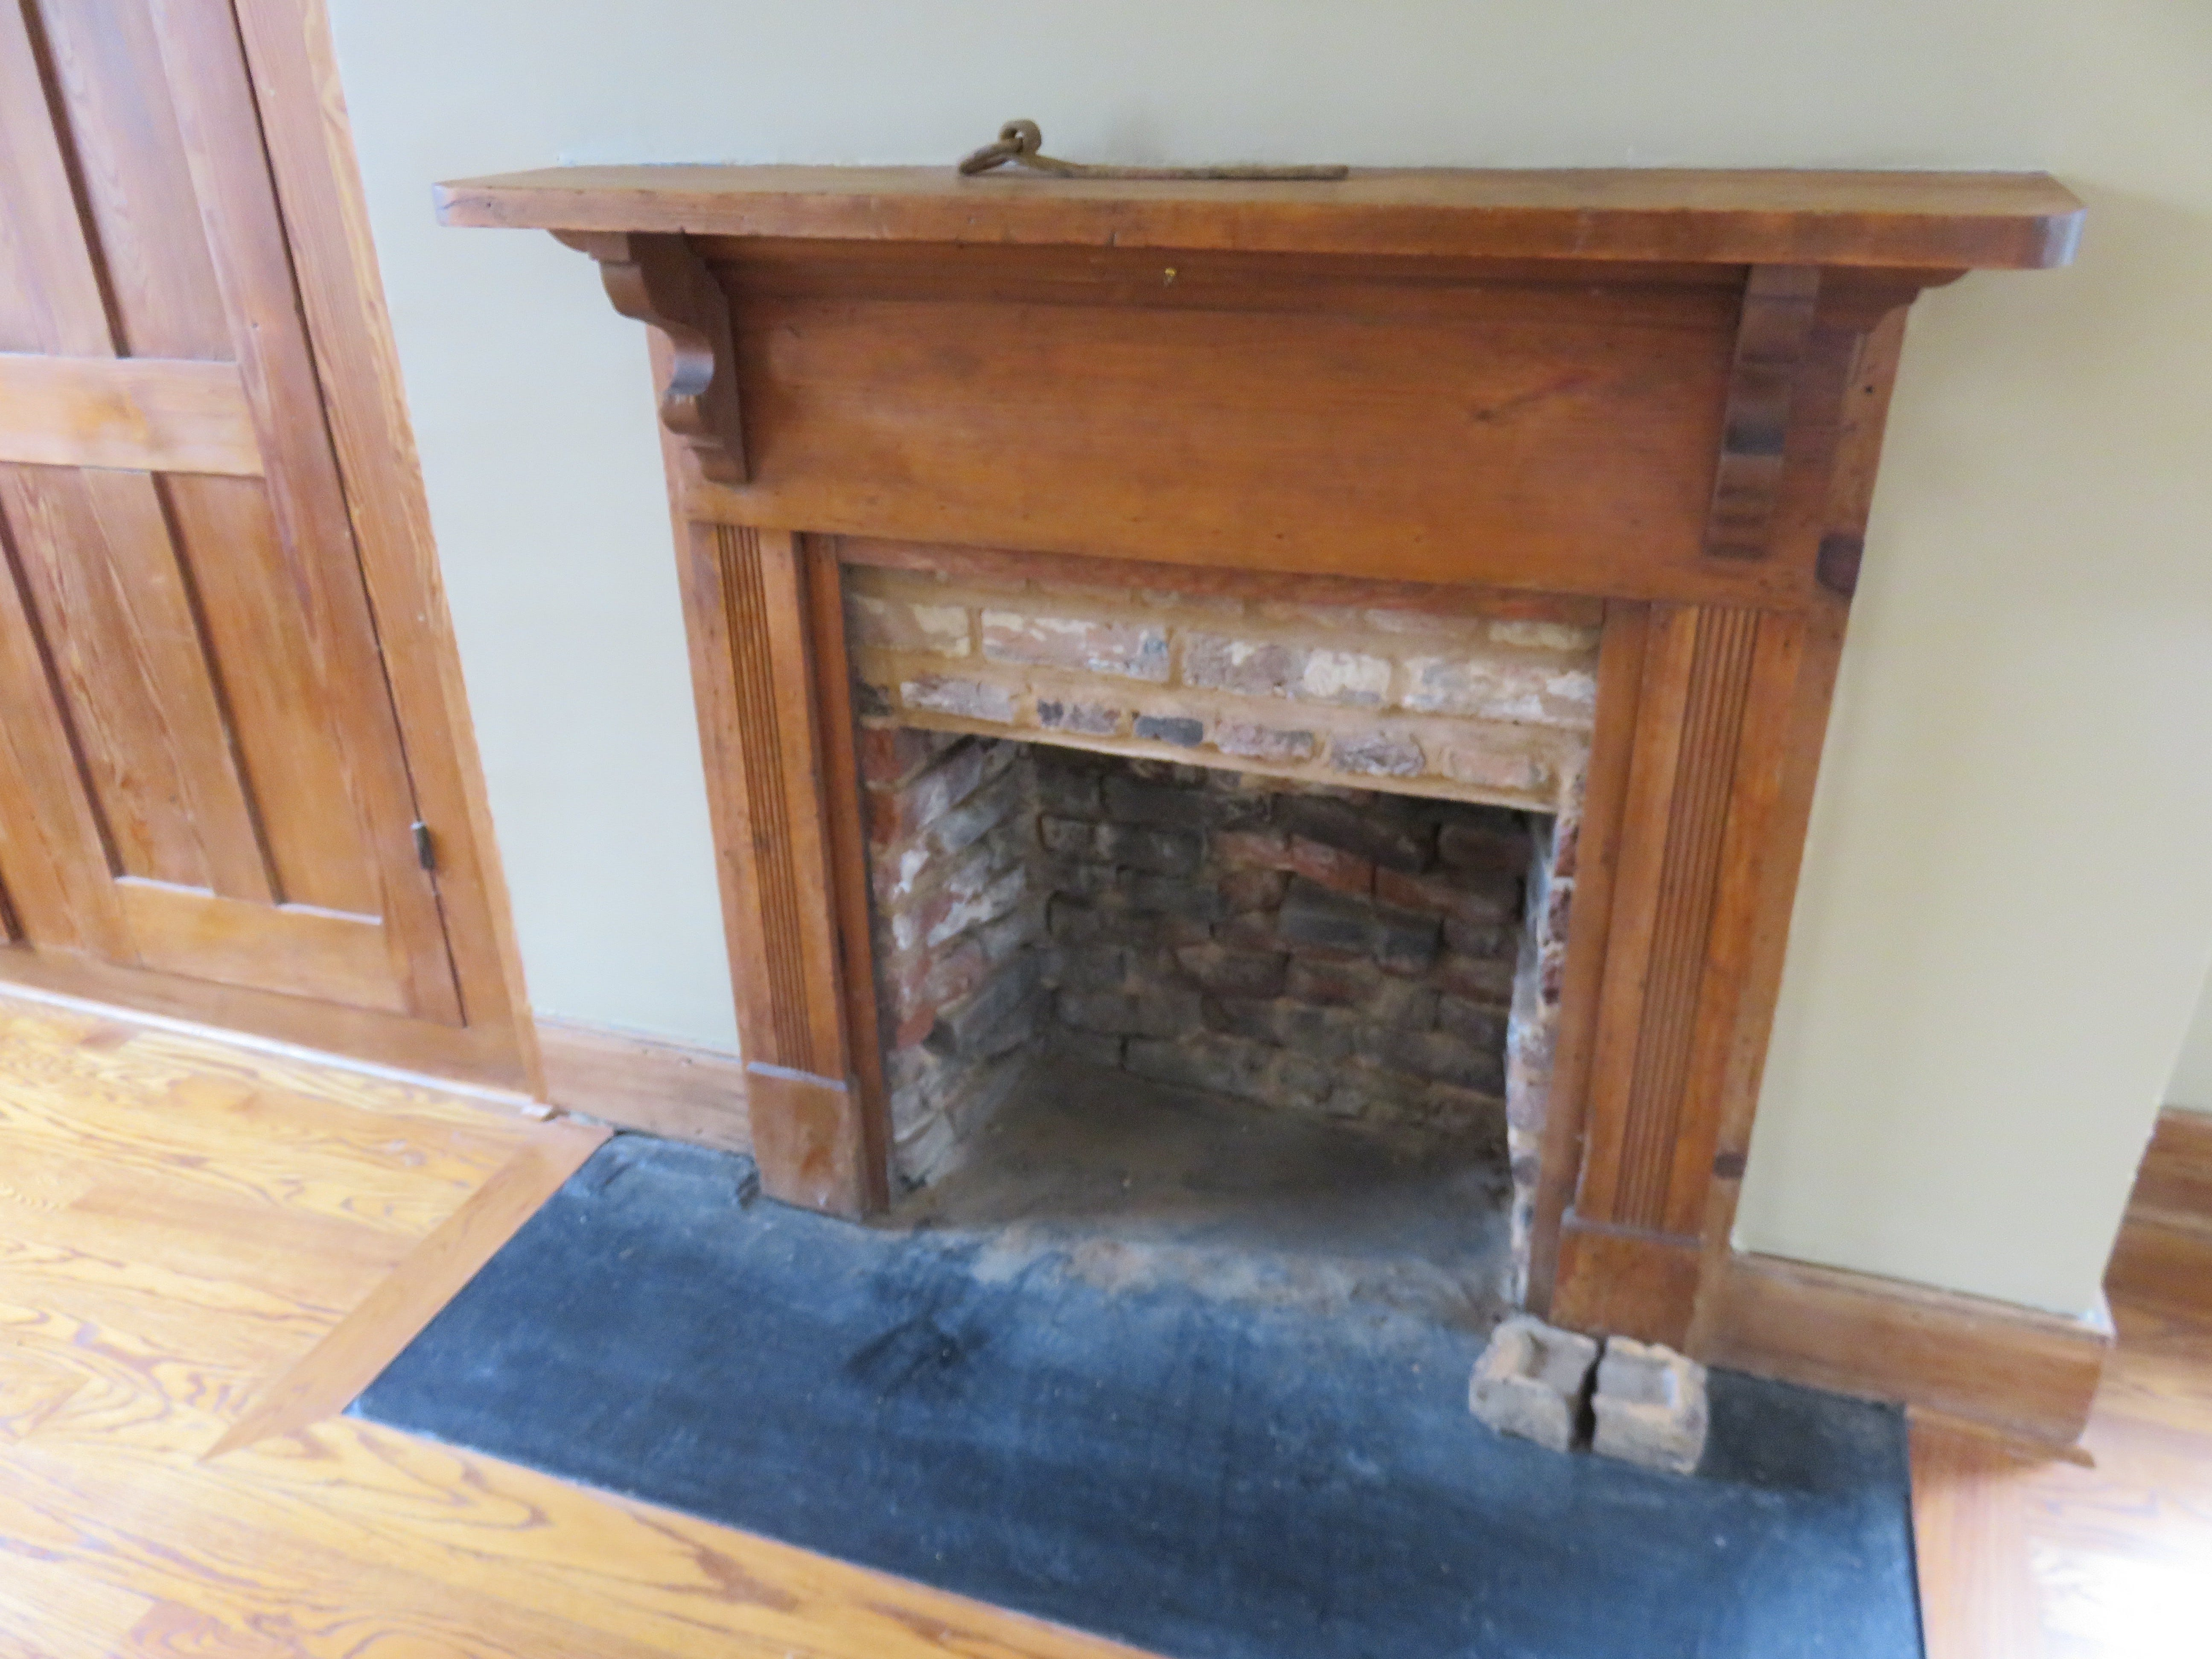 Another lower-floor fireplace, which, like the others, no longer operates.